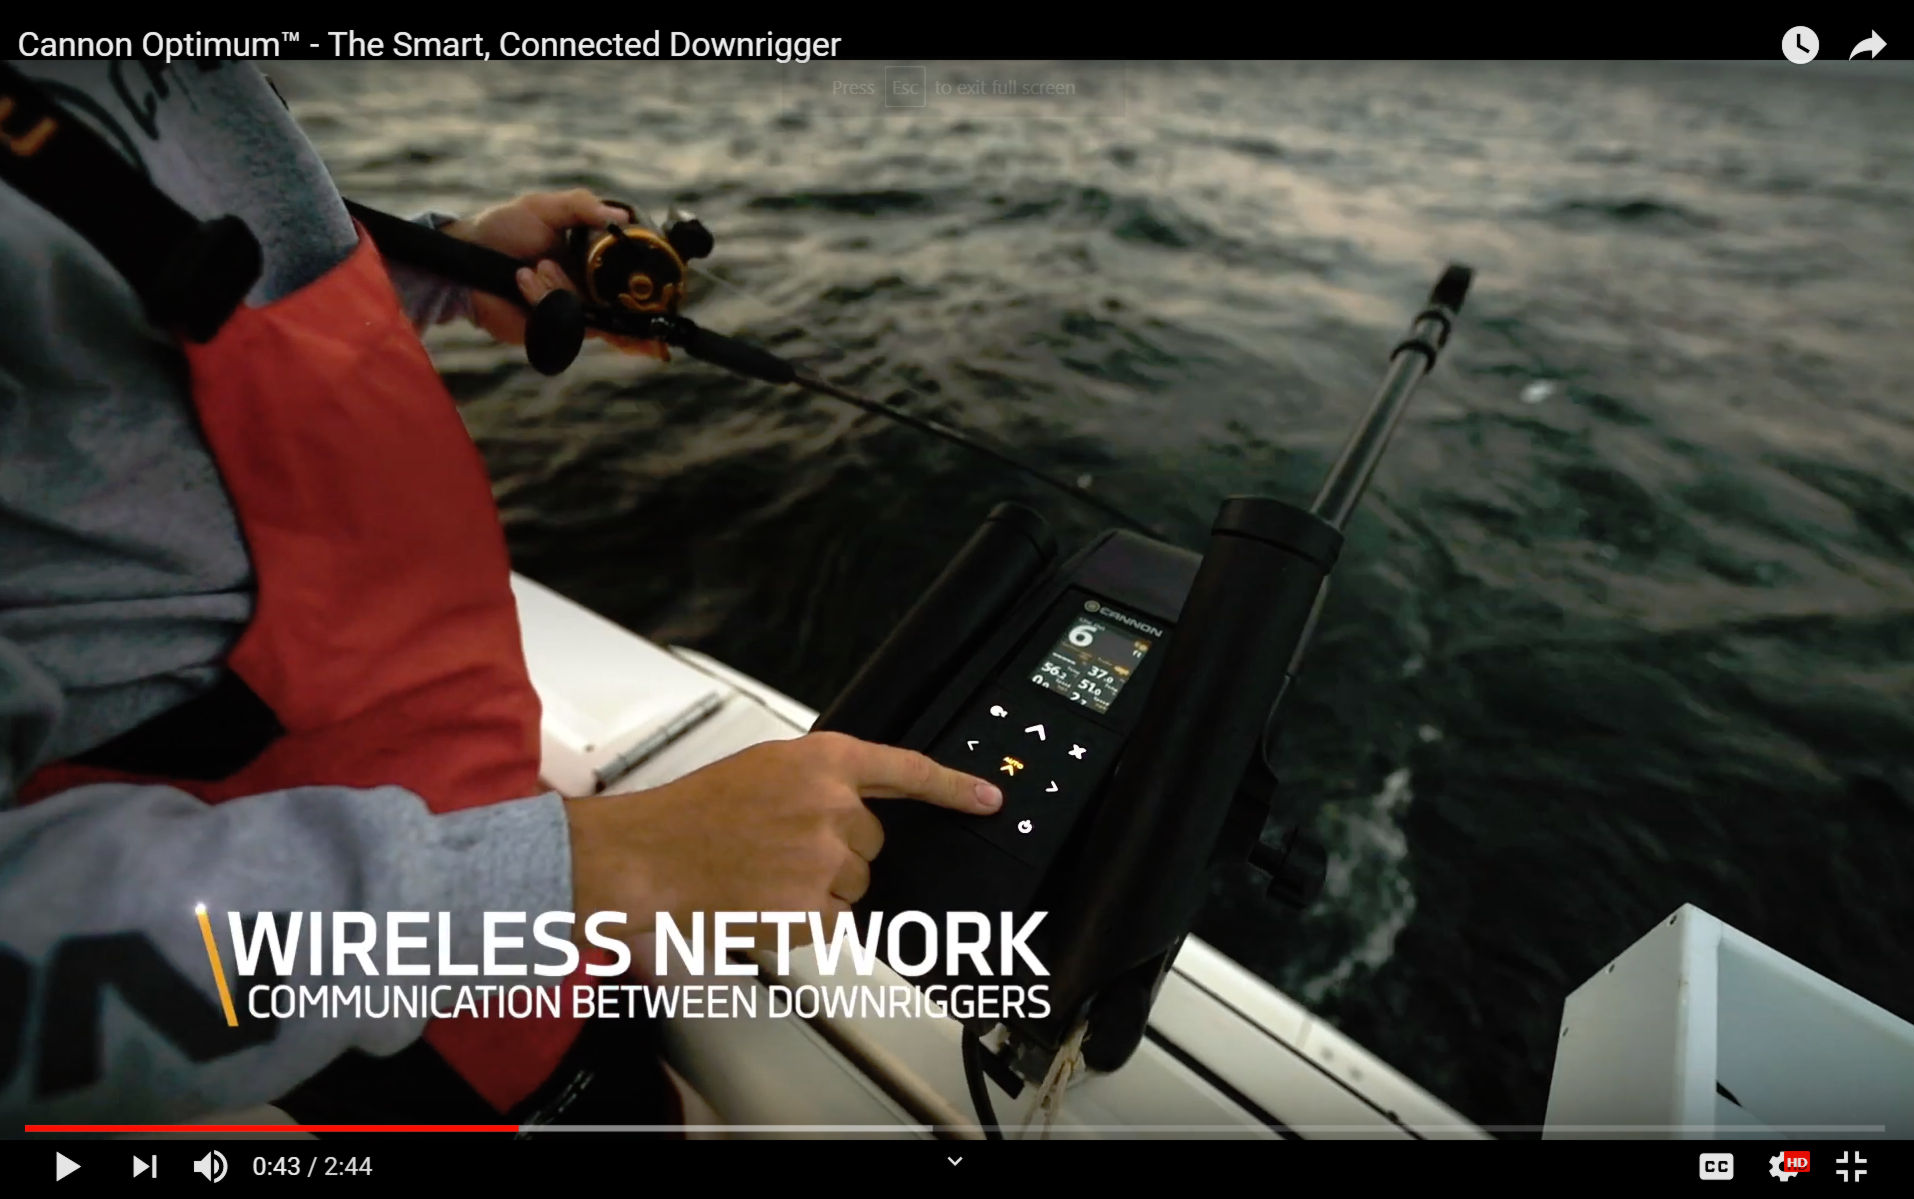 Cannon Modernizes Downrigger Technology with Connected